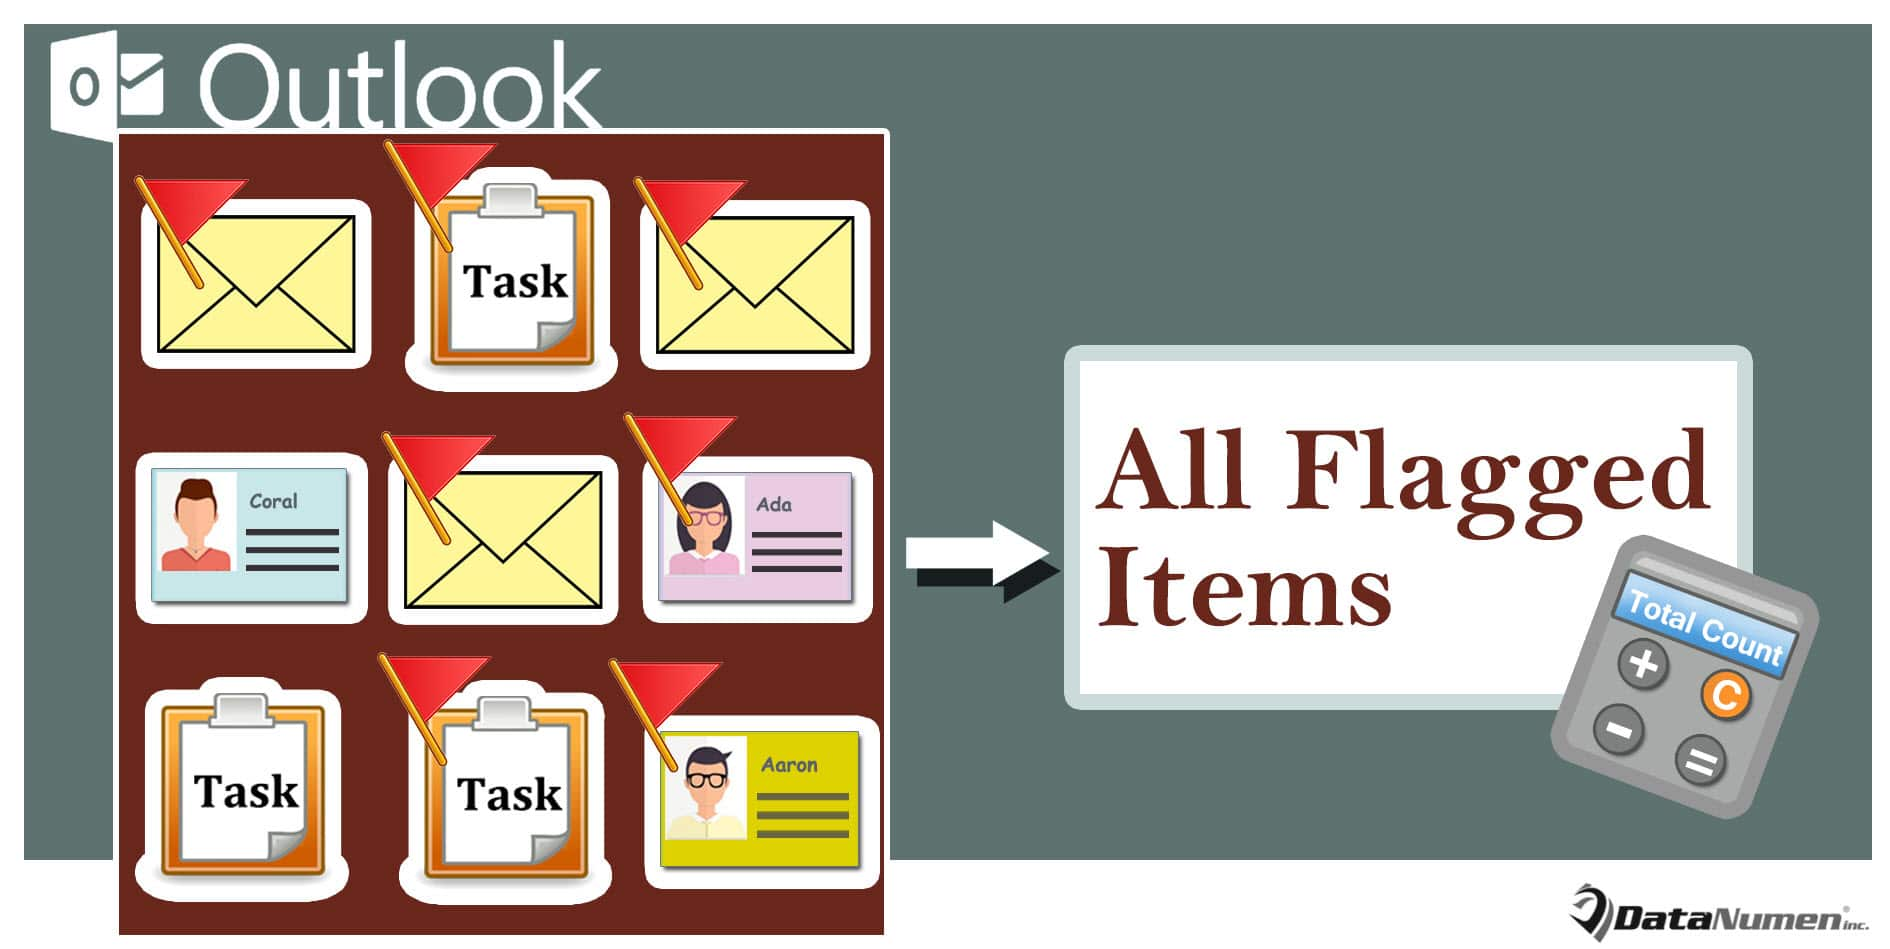 Count All Flagged Items in Your Outlook